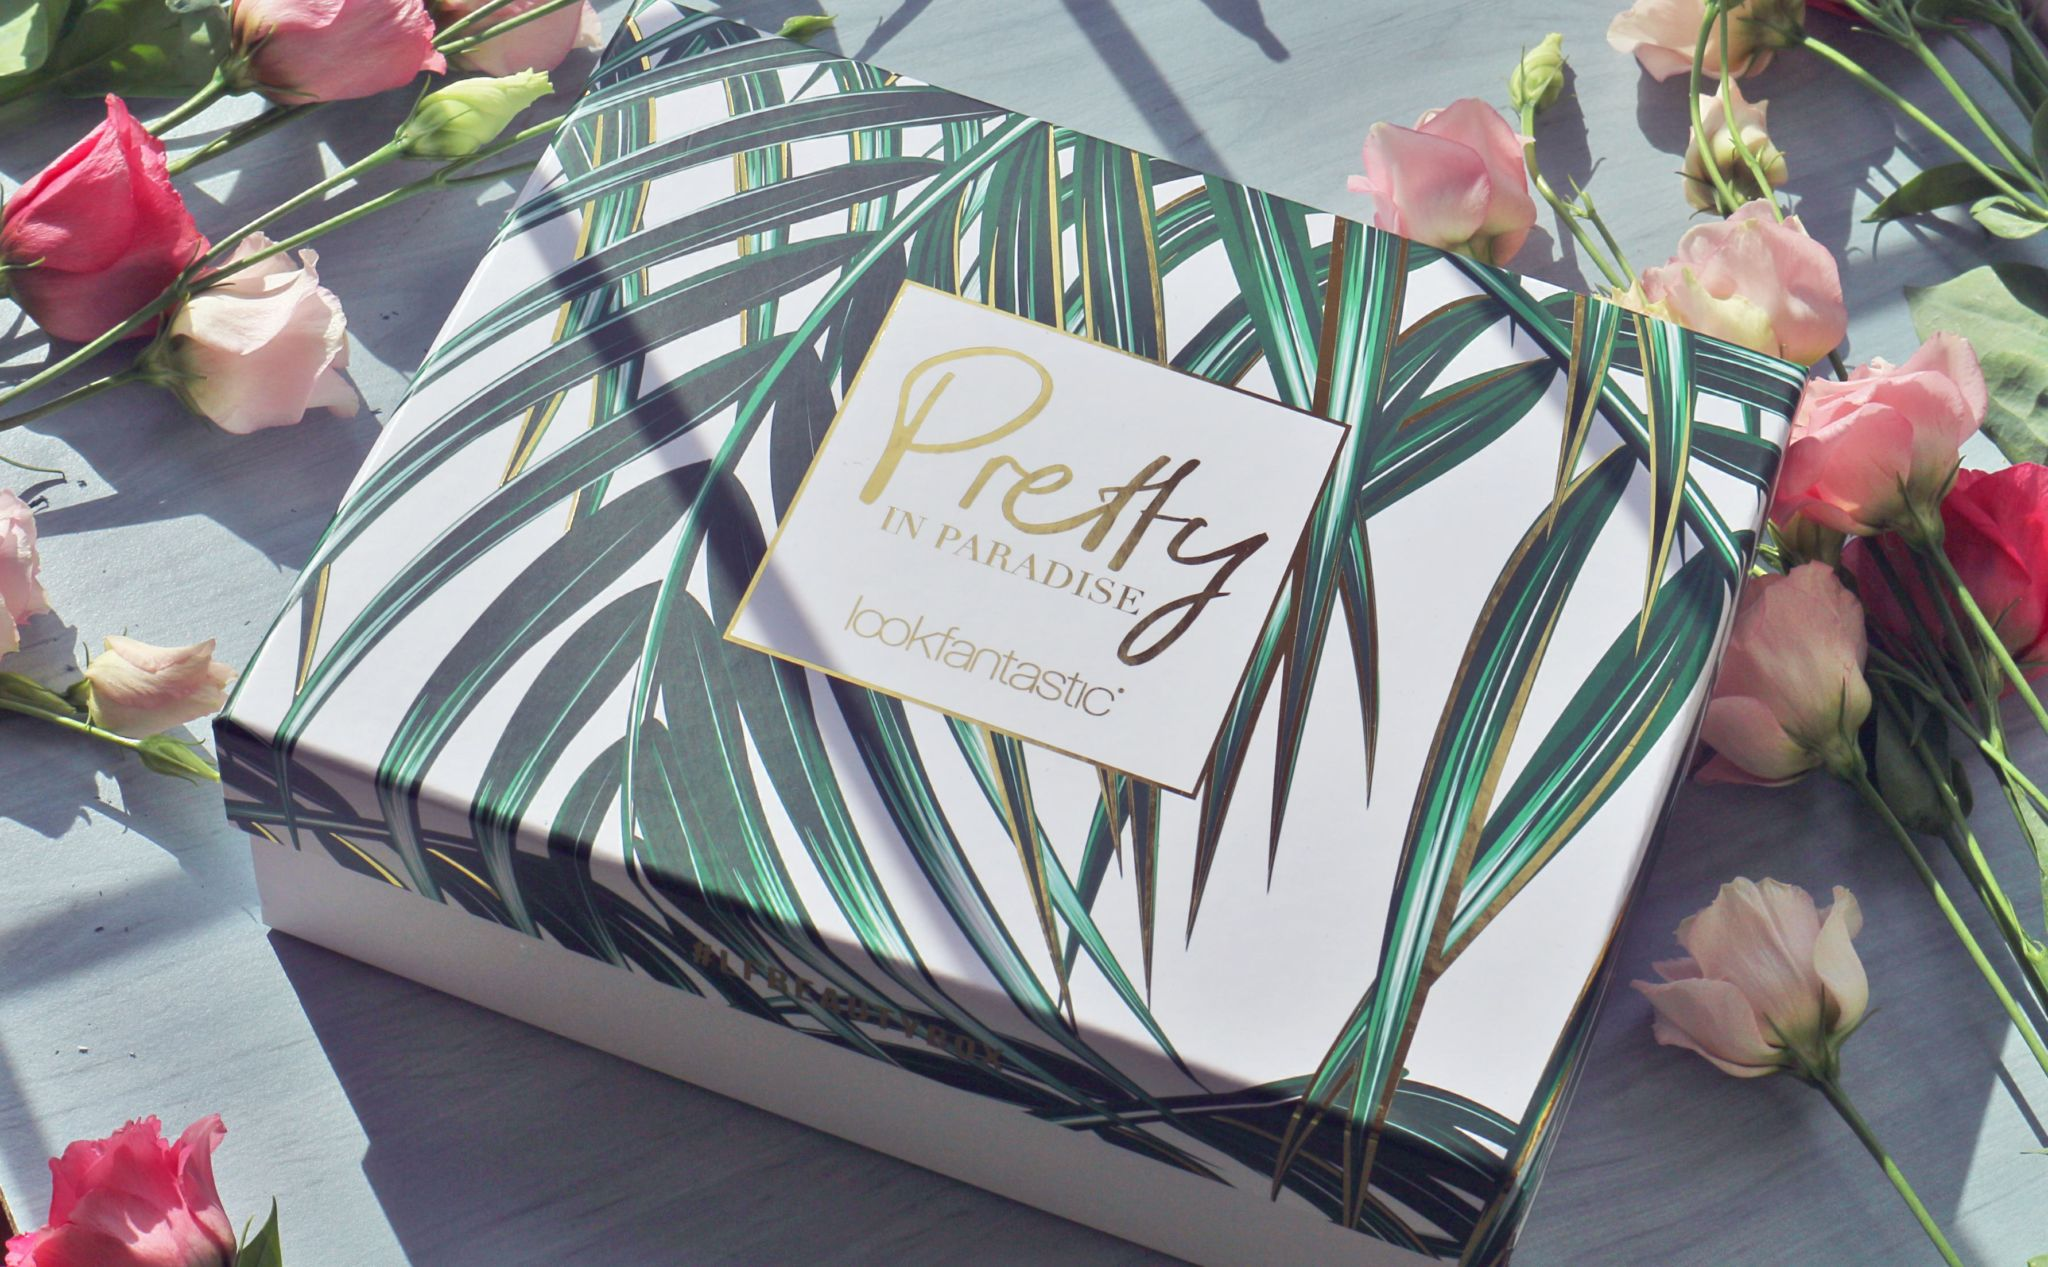 Lookfantastic Beauty Box July 2017 Pretty In Paradise_IMG_2563